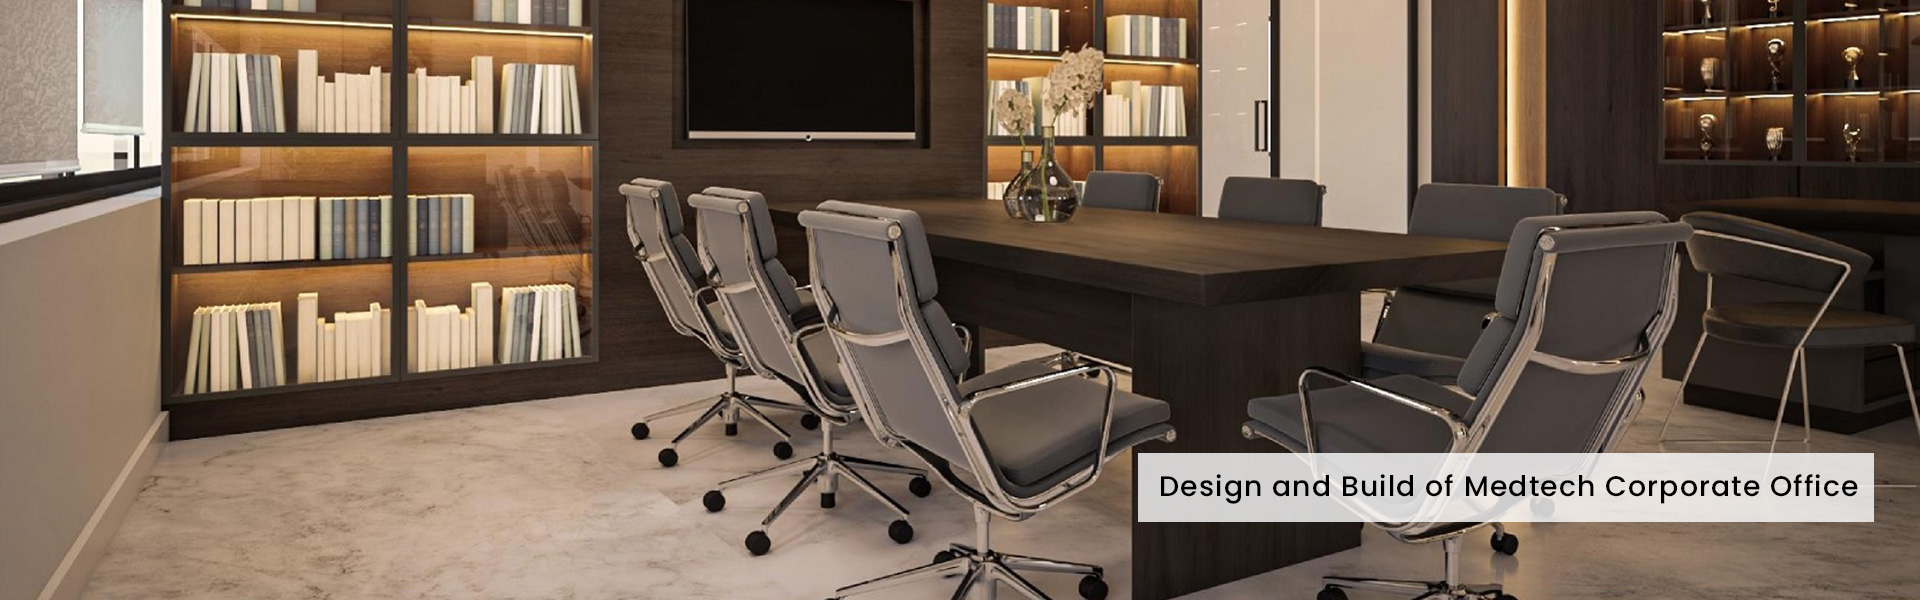 Design-and-Build-of-Medtech-Corporate-Office